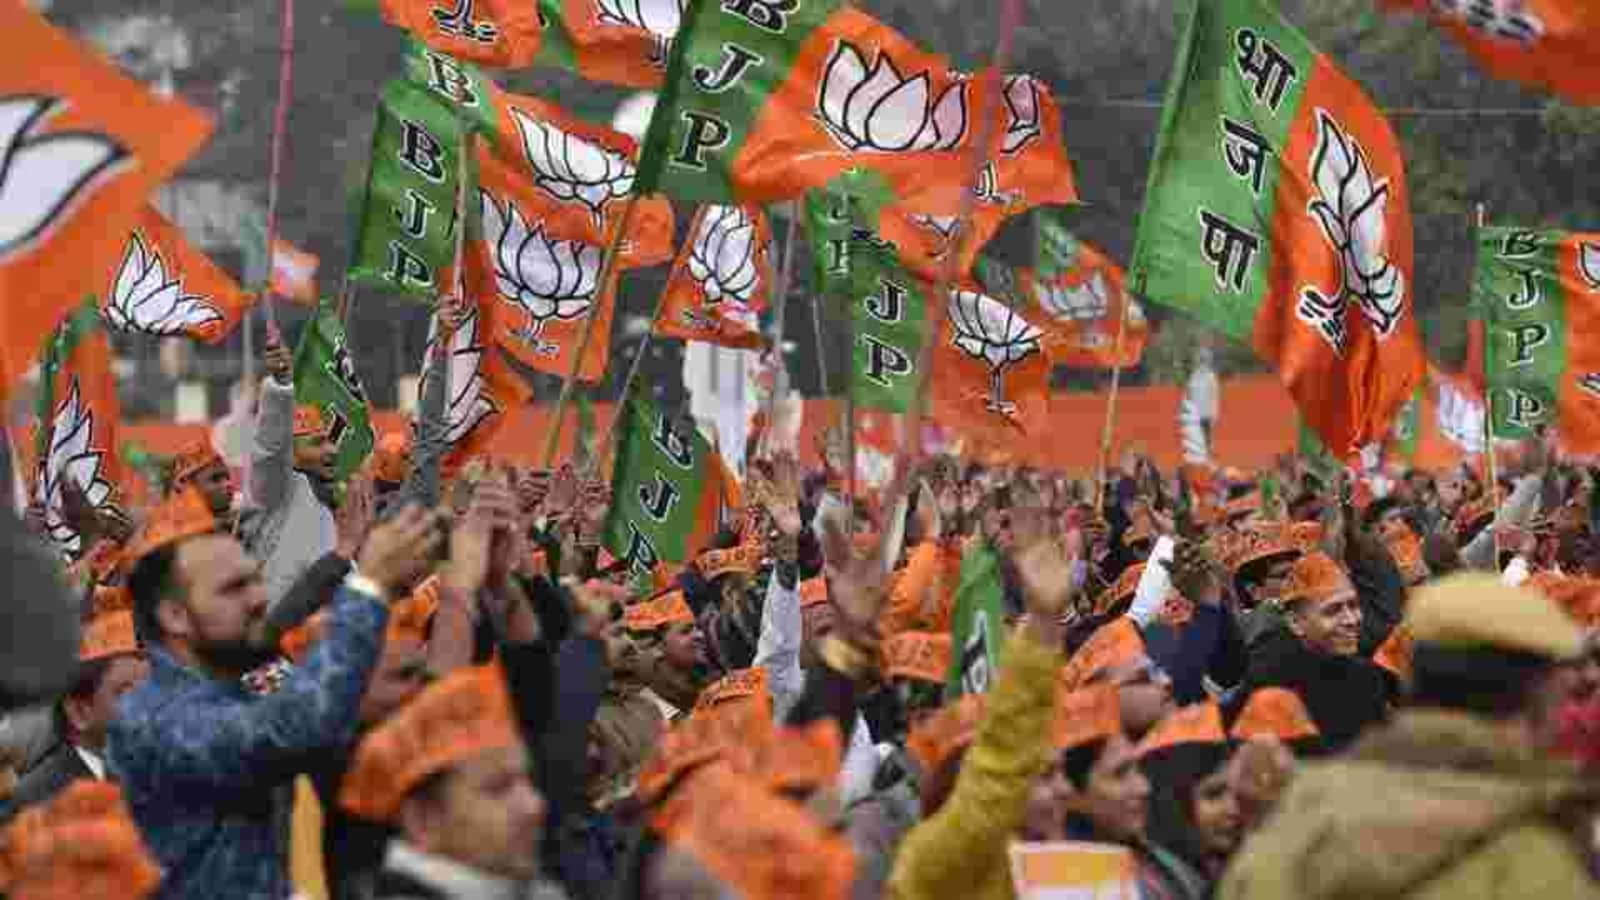 BJP likely to finalise 1st list of candidates for upcoming Assembly polls today